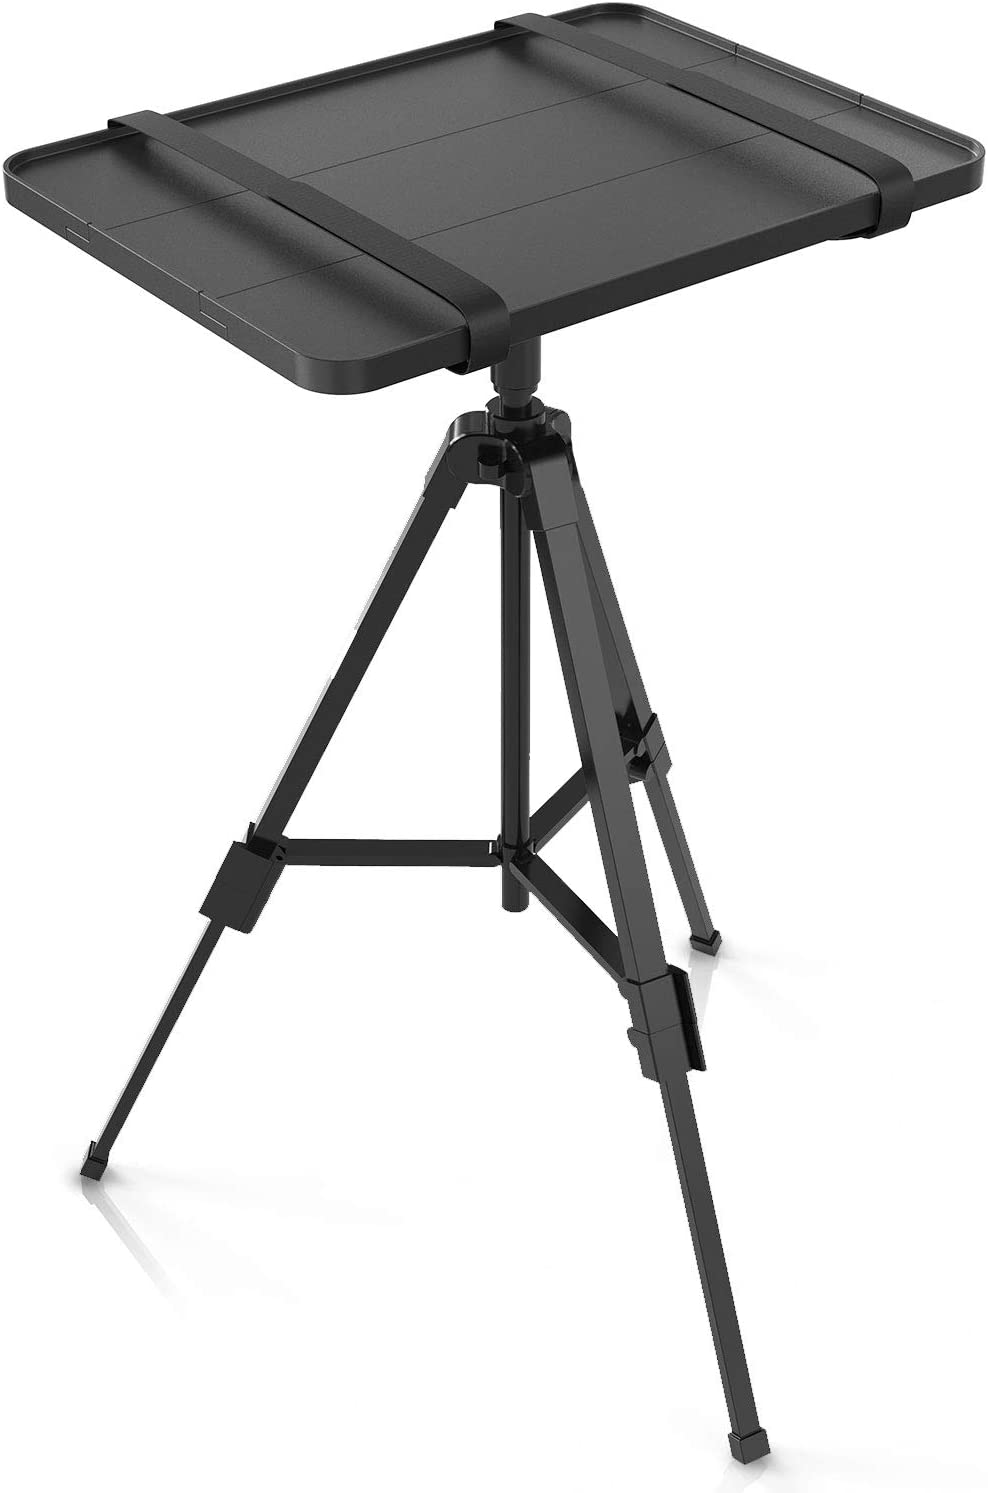 WALI Lightweight Projector and Laptop Tripod Stand Portable DJ Equipment Holder Mount Height adjustable 18 to 35 Inch Foldable Stand for Office, Home, Stage or Studio (PRS001), Black